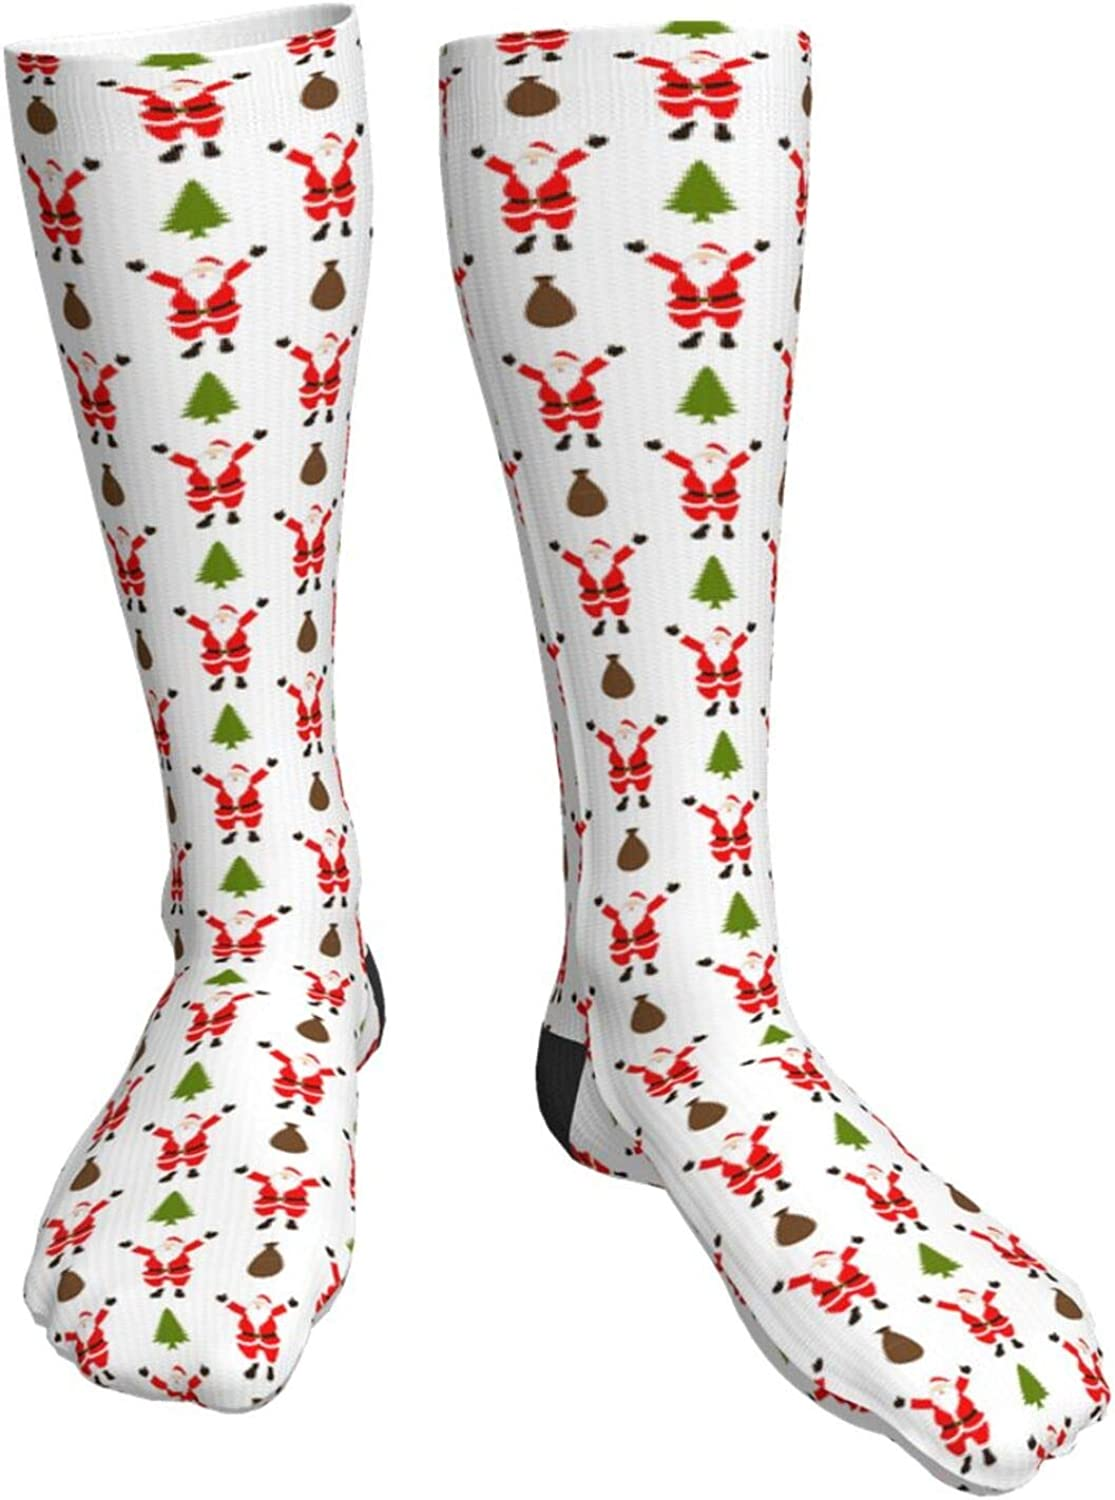 Christmas Winter Snowflake Mittens Lollipop Crew Crazy Novelty Max 51% OFF Save money S